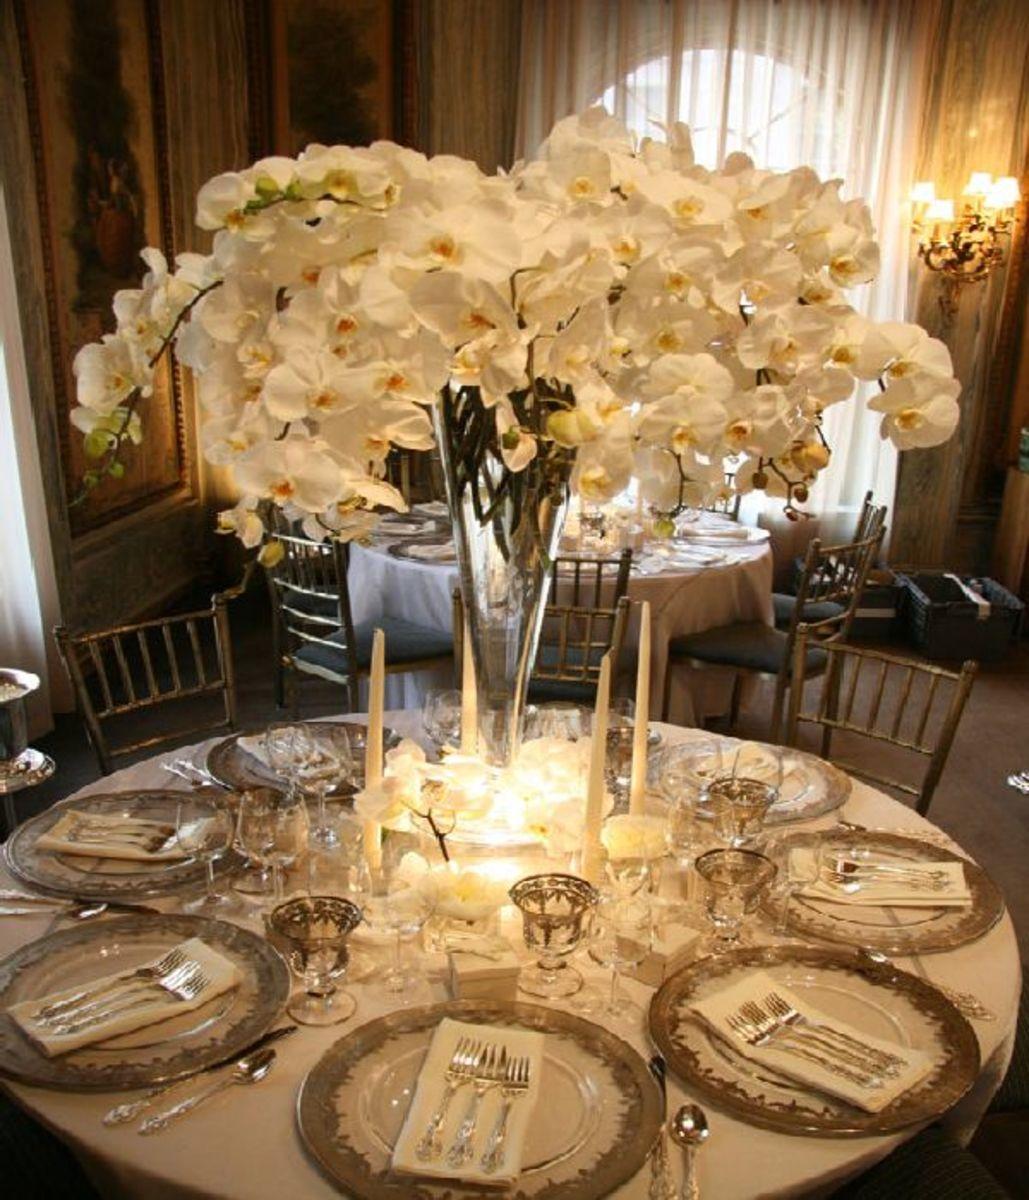 Wedding Table Decorations: 20+ Photos Of Wedding Table Décor Ideas